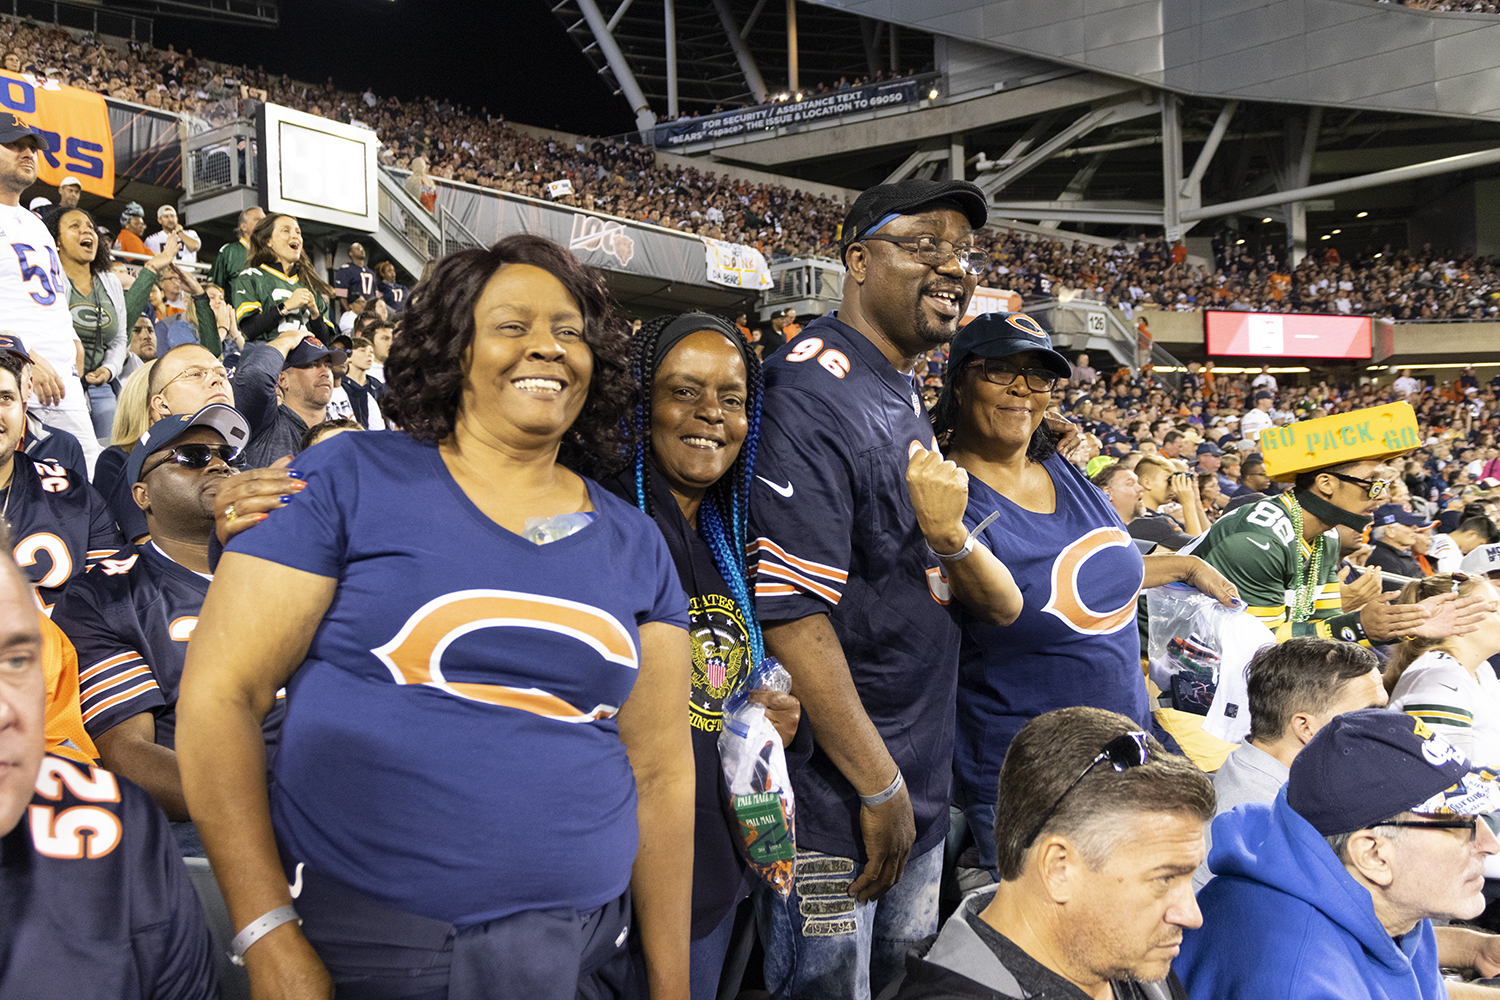 The+family+of+Akiem+Hicks+takes+in+the+first+Bears+game+of+the+season+Sept.+5+at+Soldier+Field.